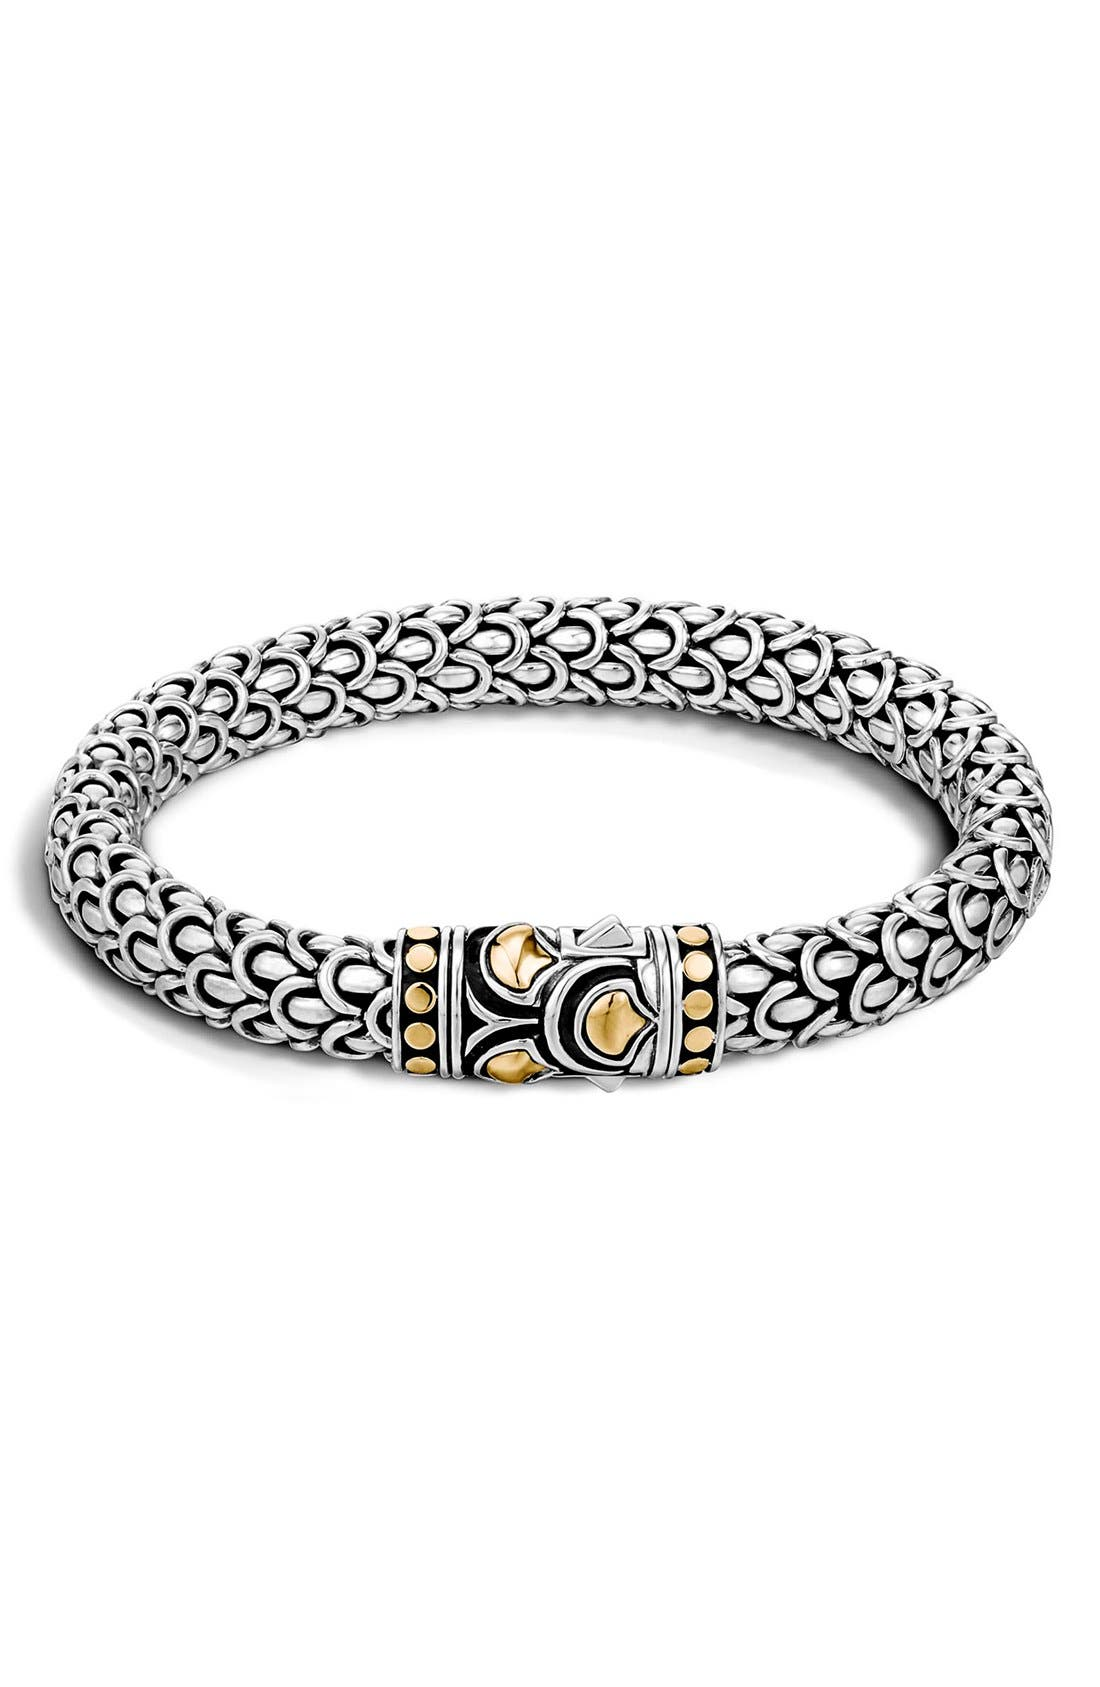 Legends Naga 7mm Station Bracelet,                             Main thumbnail 1, color,                             Silver/ Gold